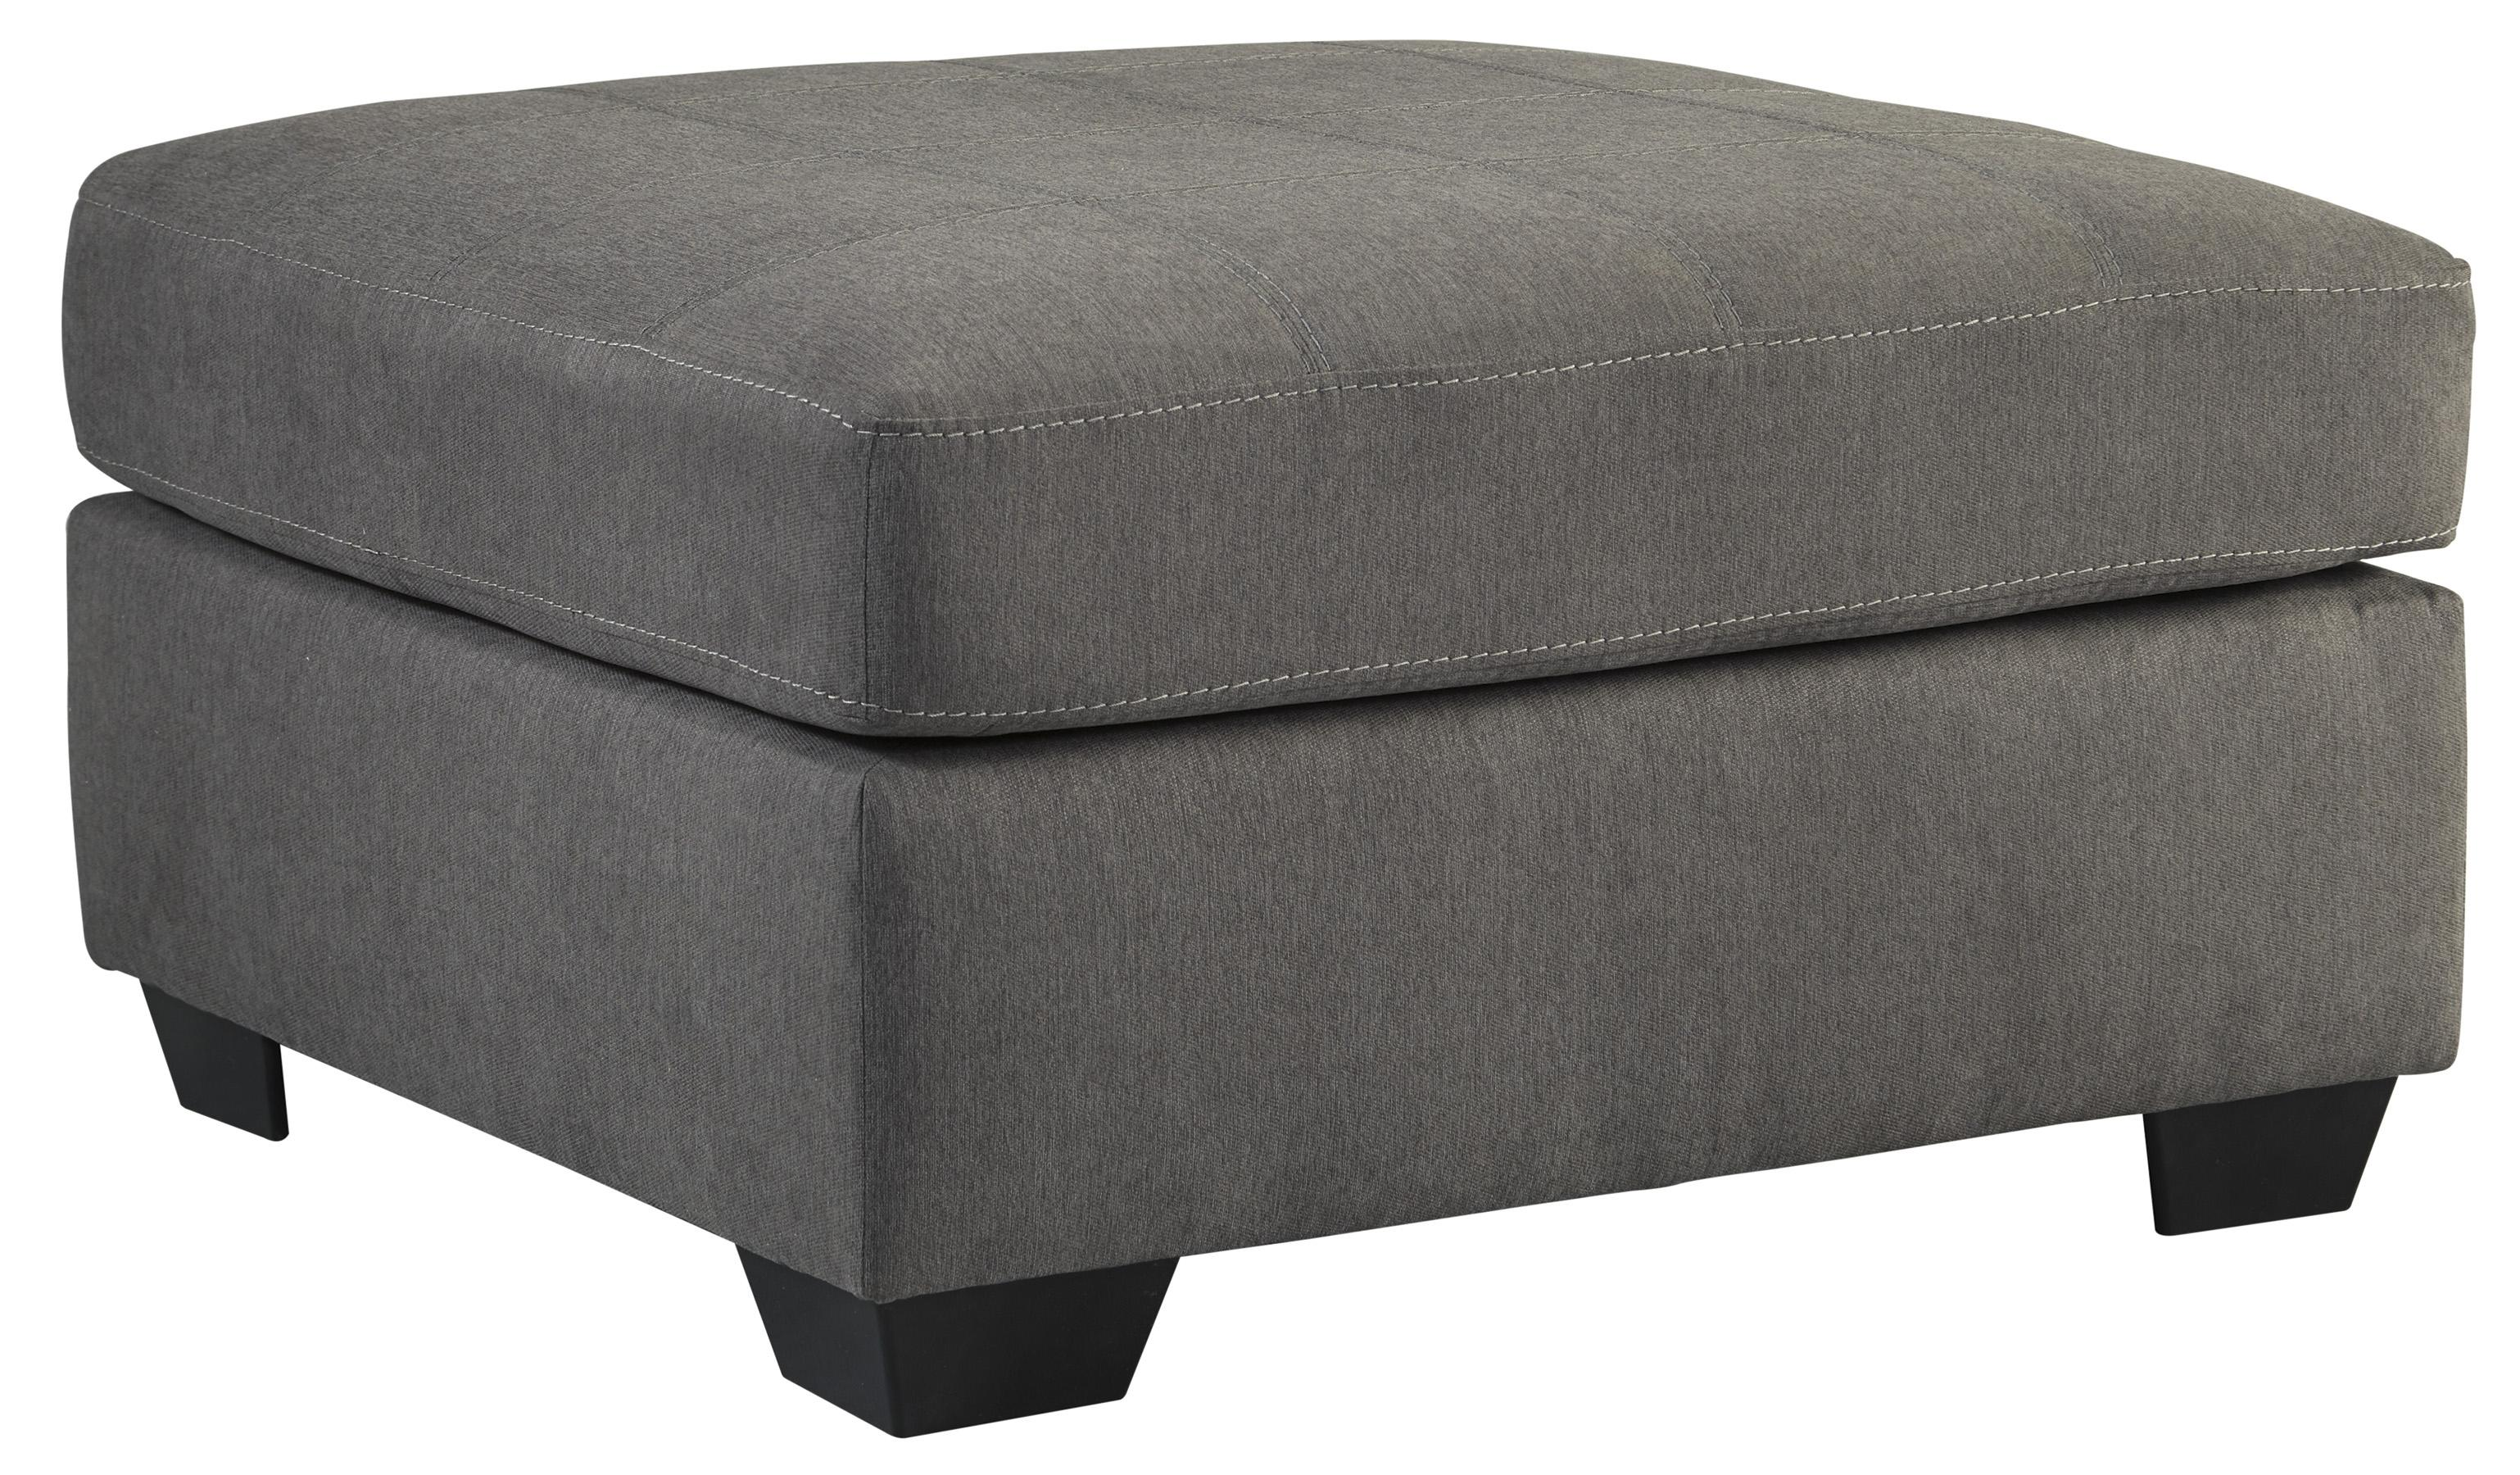 Benchcraft Maier - Charcoal Oversized Accent Ottoman - Item Number: 4520008